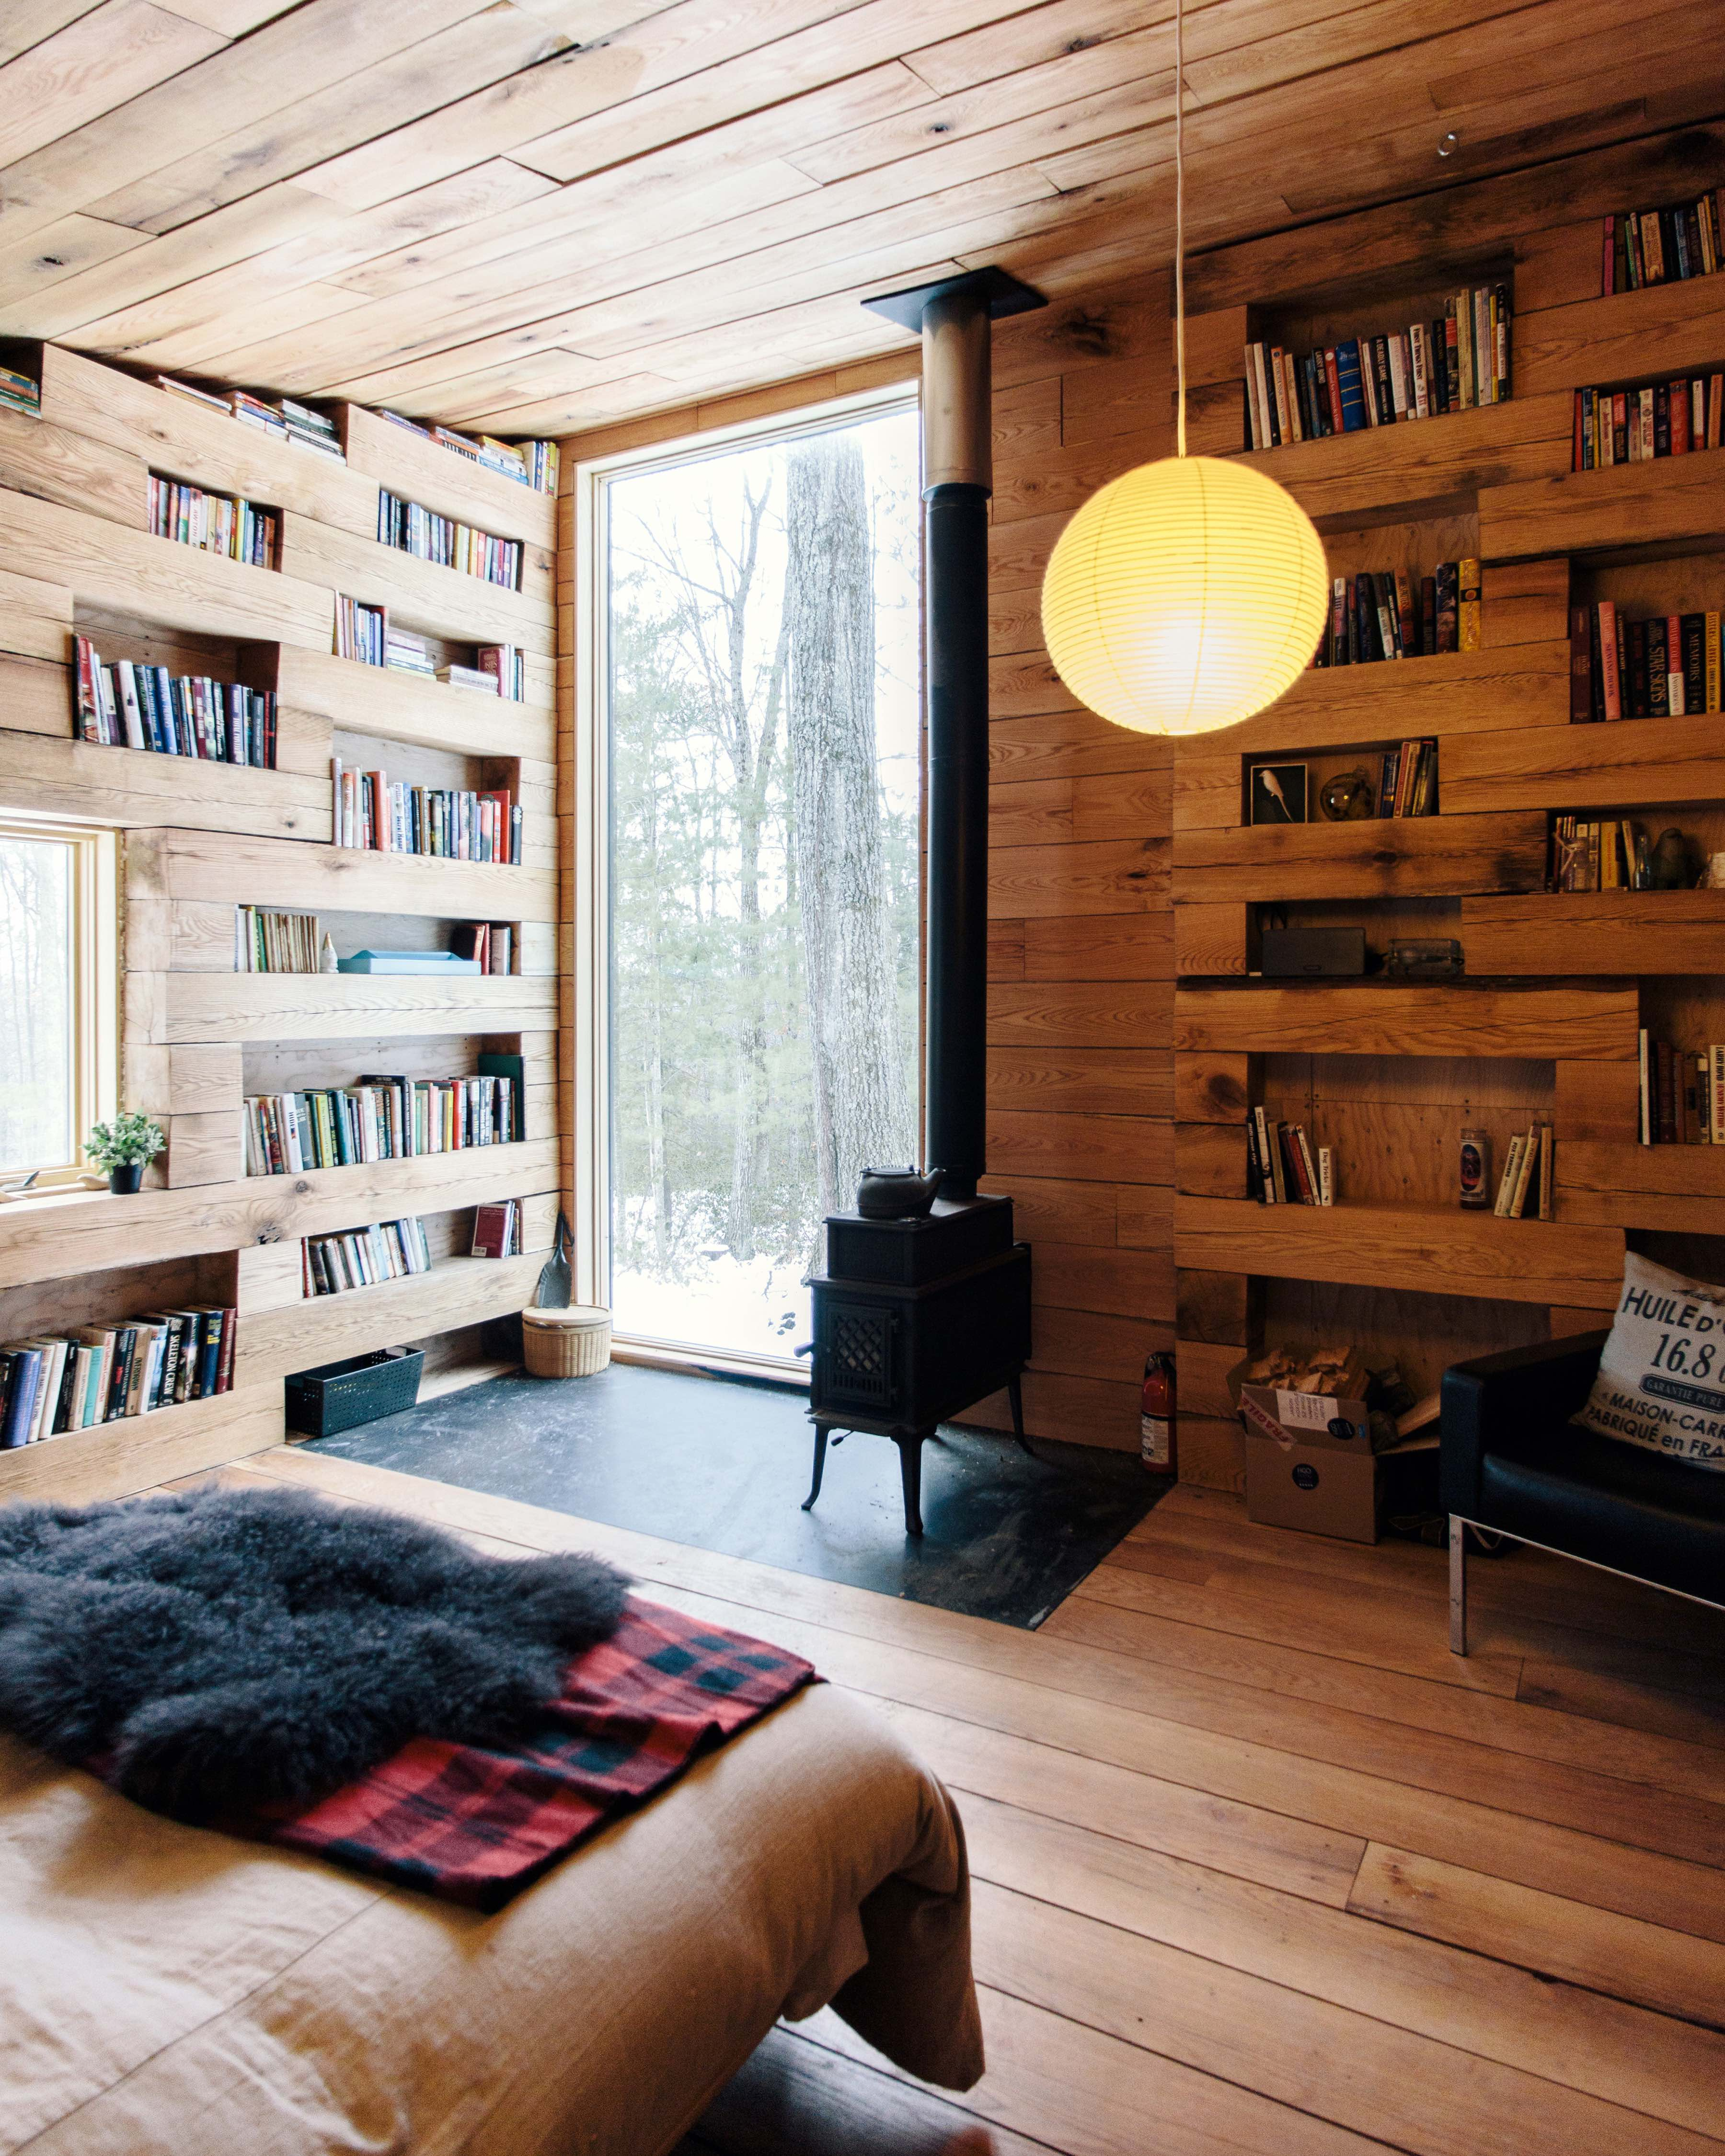 This secluded library in the woods is total property porn